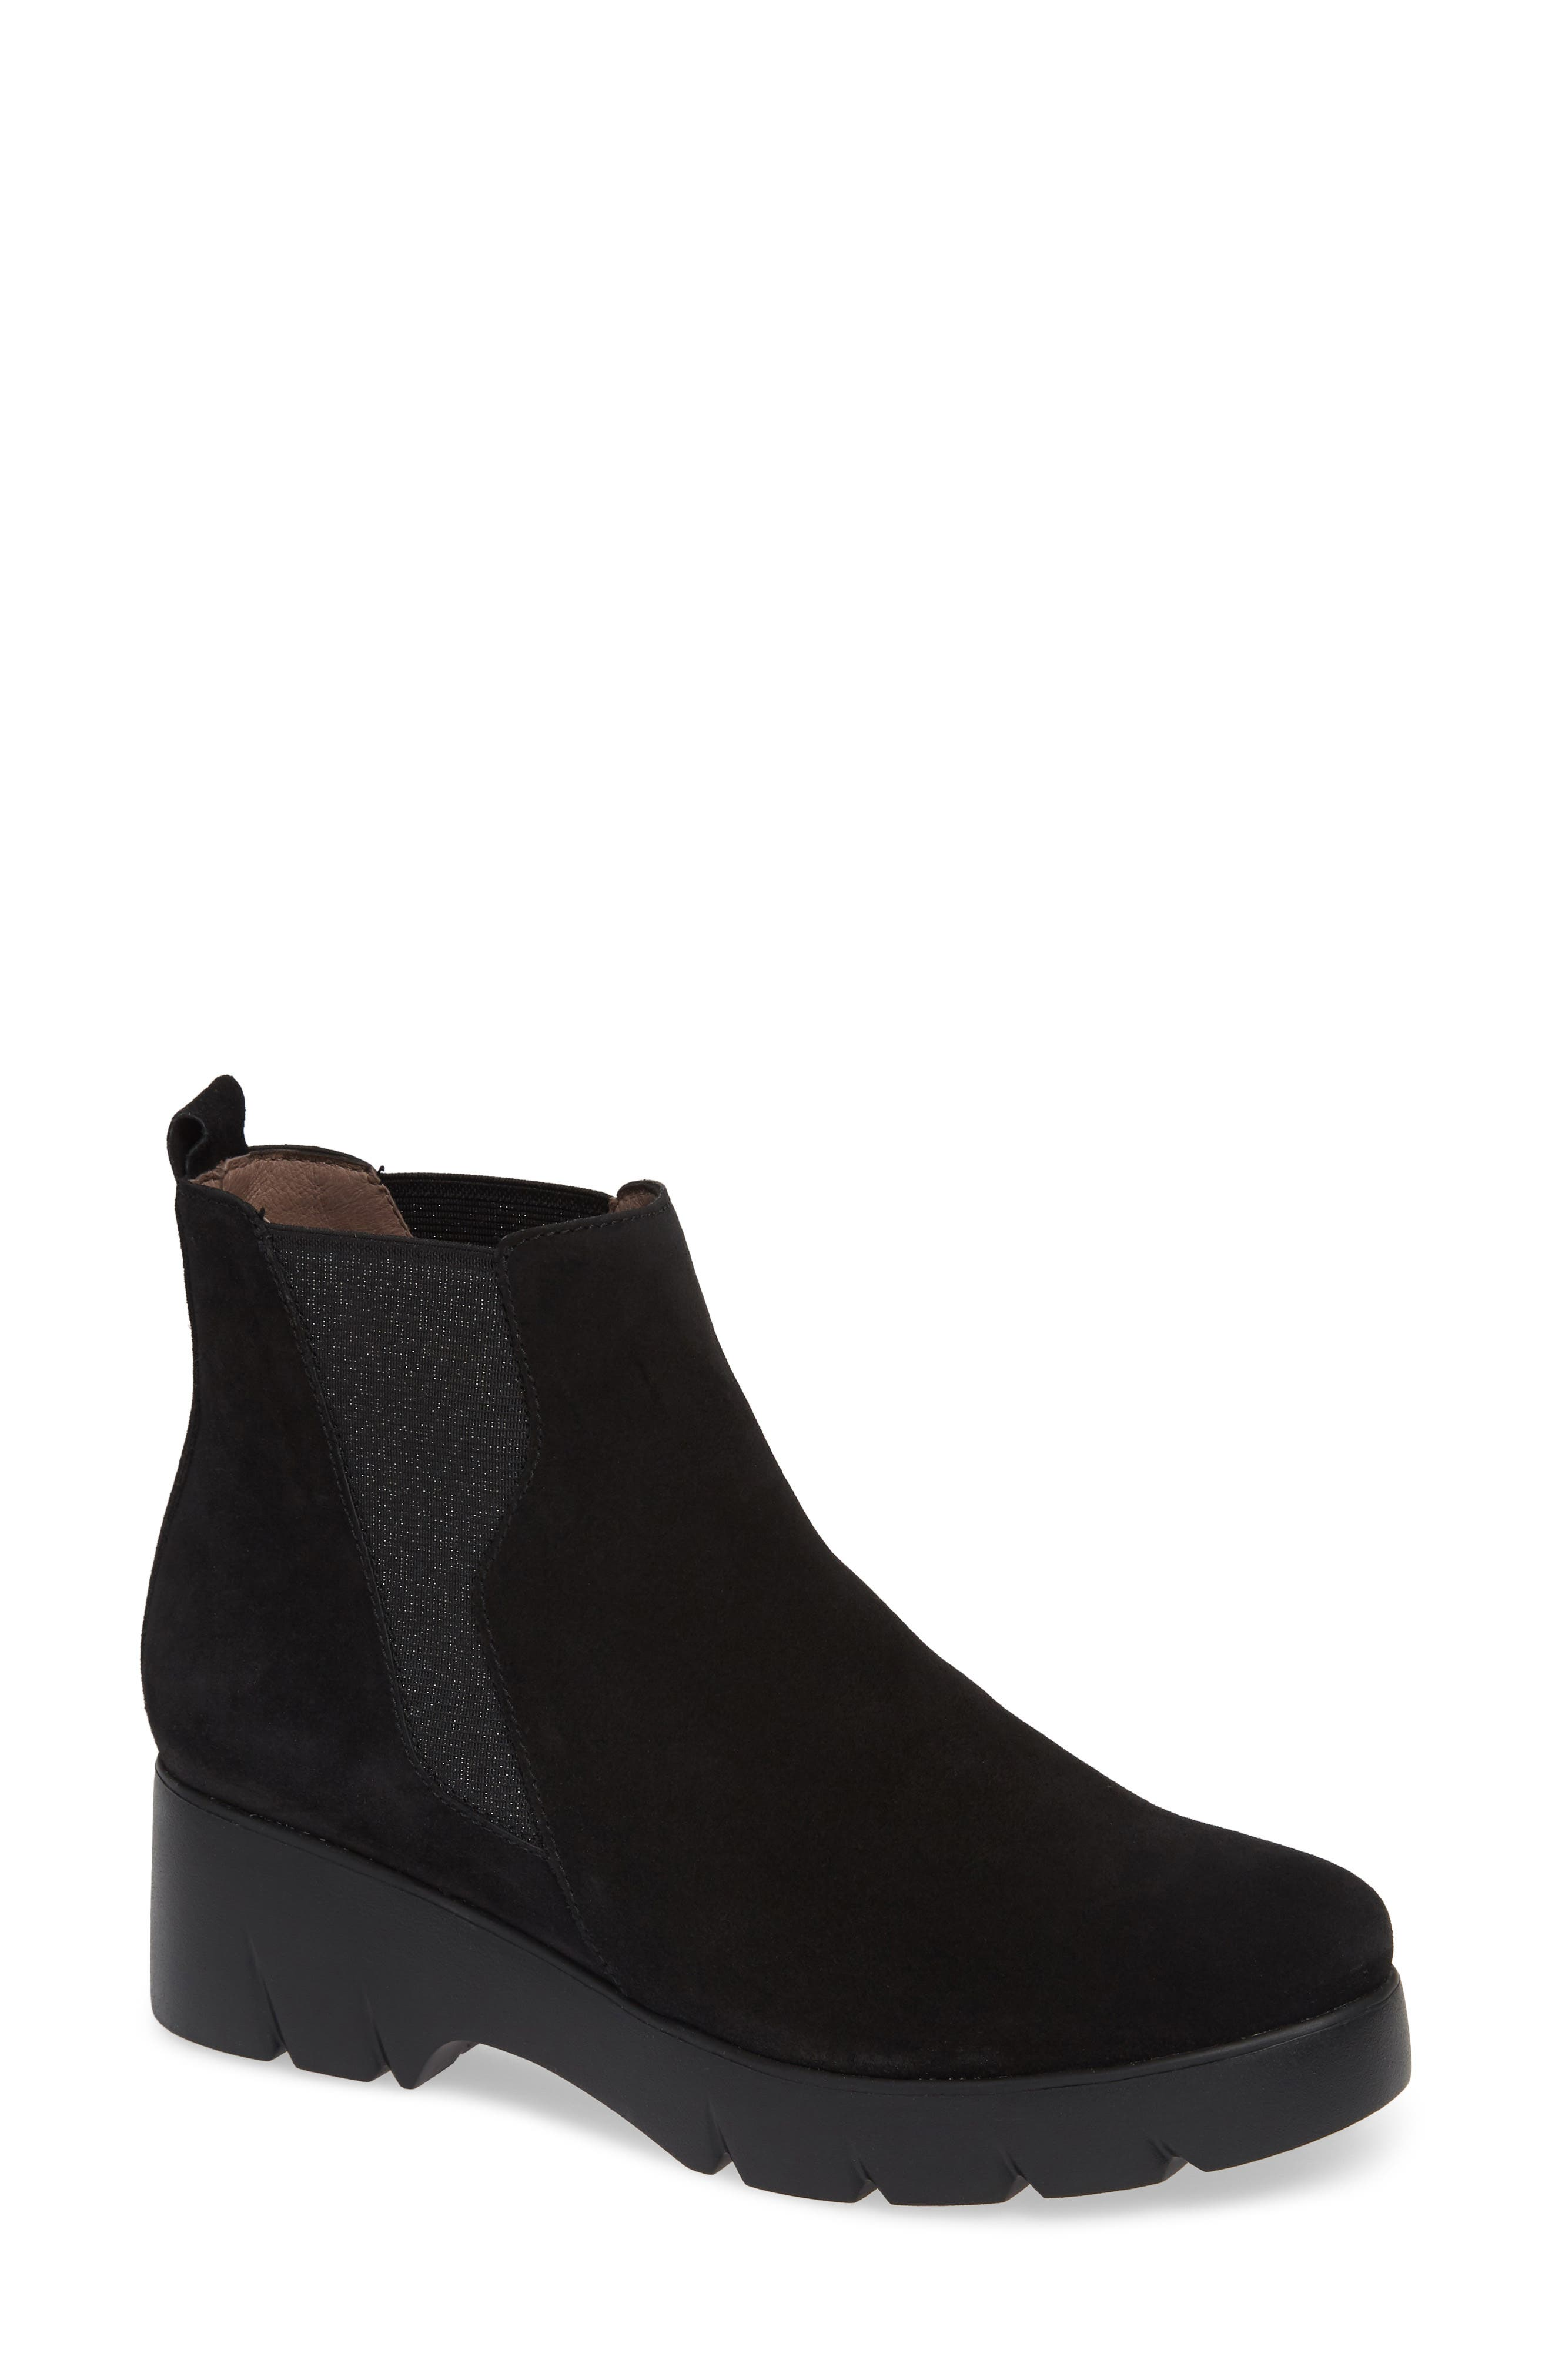 Wonders Pull-On Chelsea Boot - Black